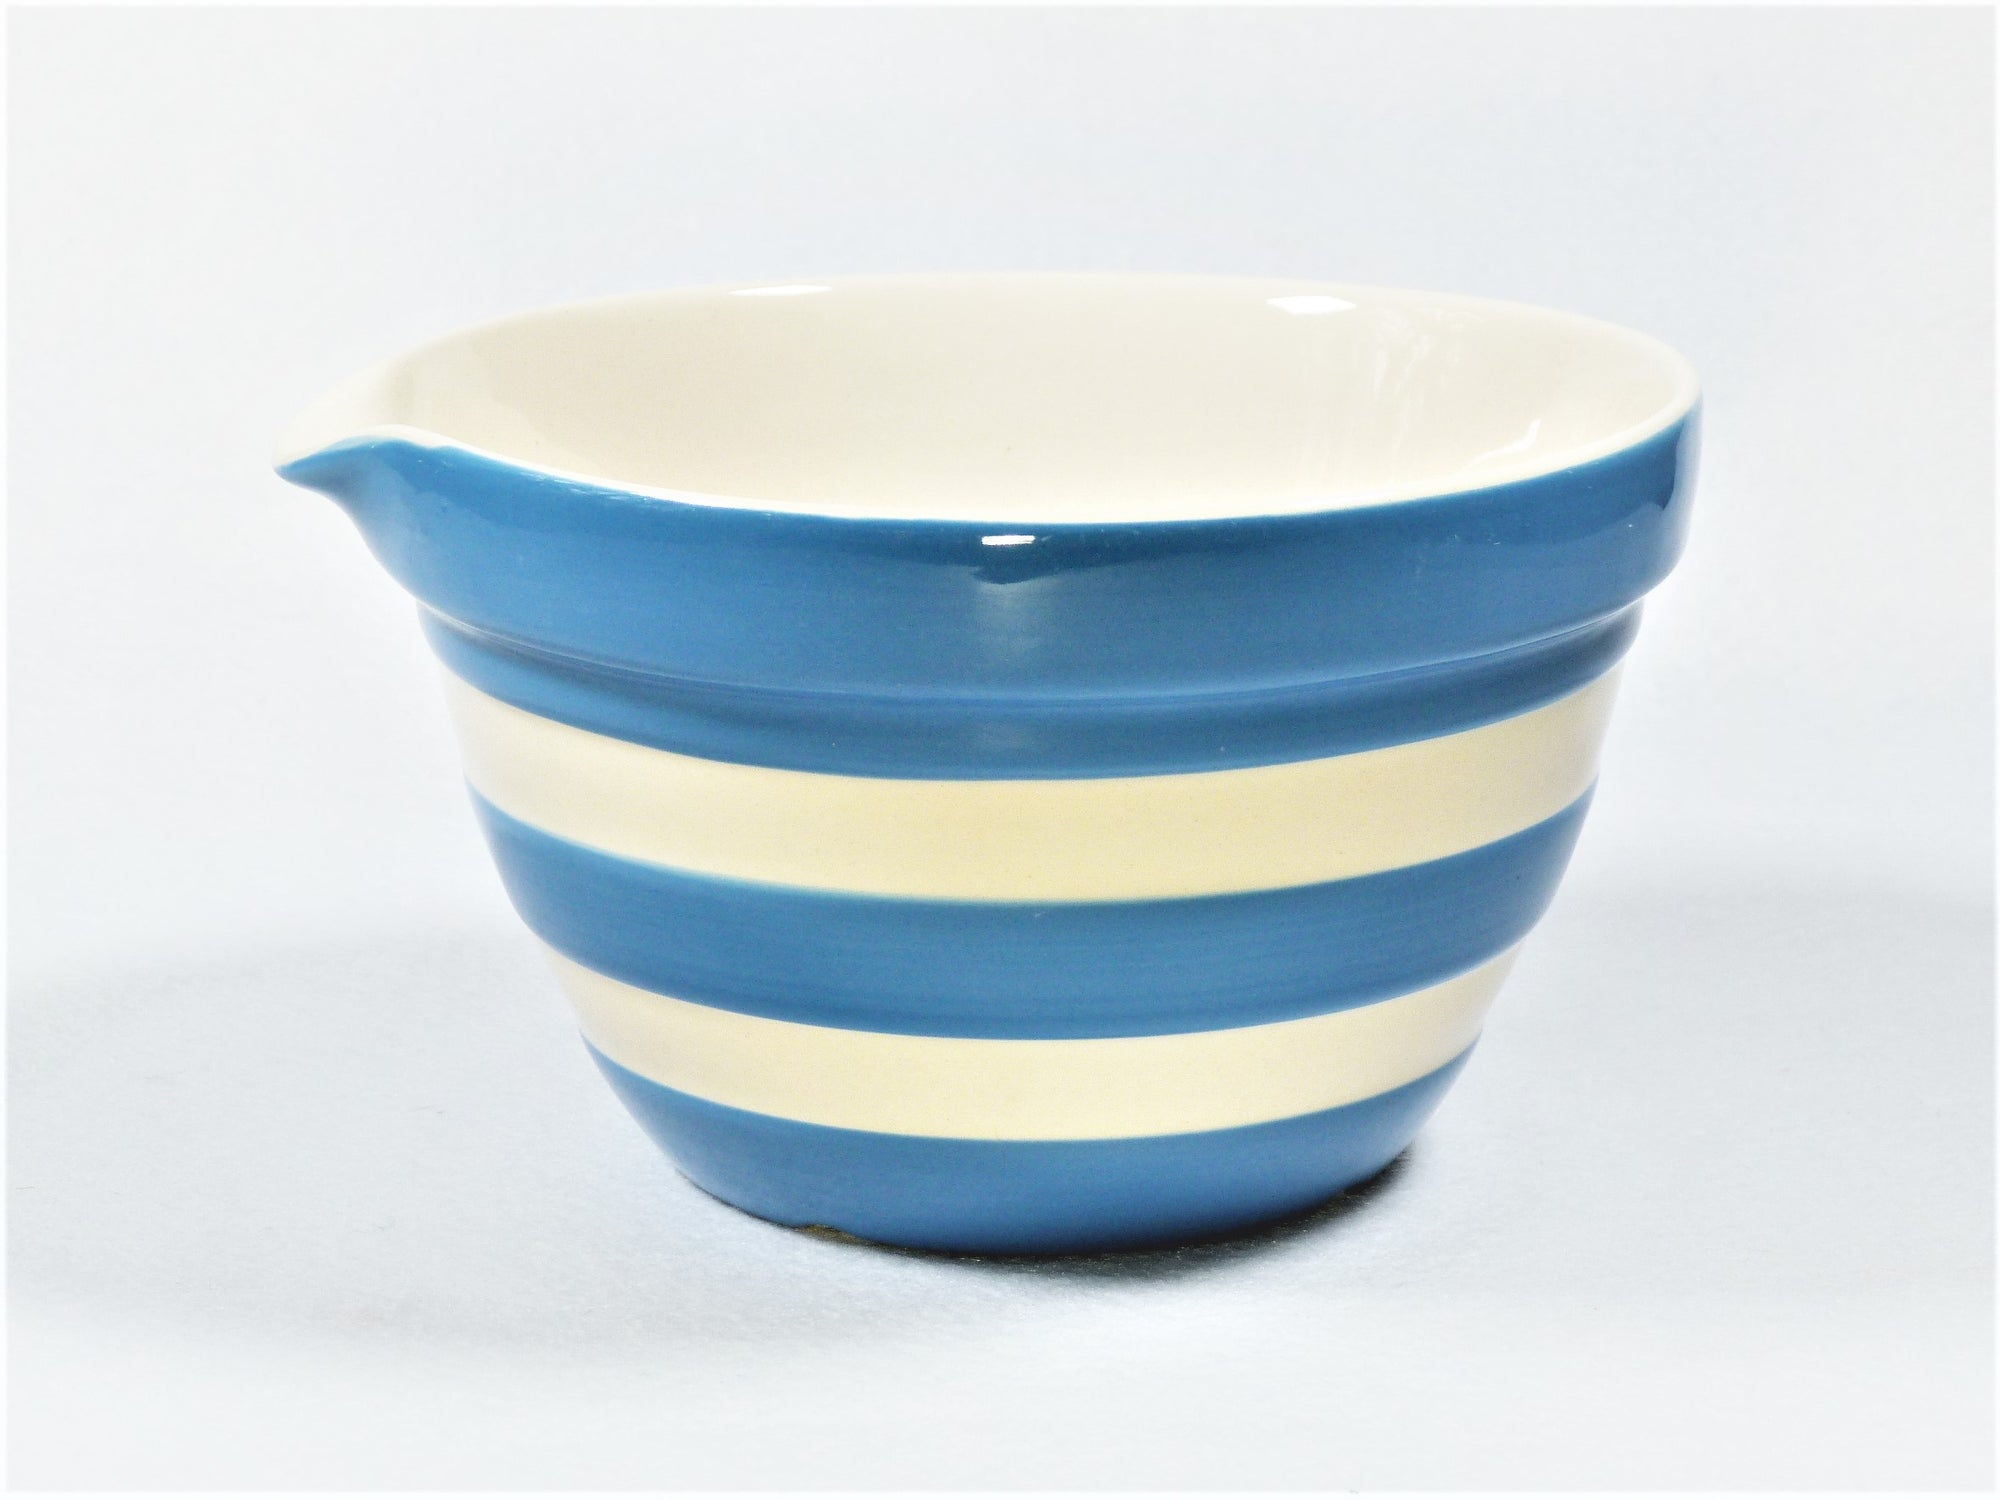 Cornishware Blue and White Striped Bowl with Pouring Lip, T G Green Mixing Bowl